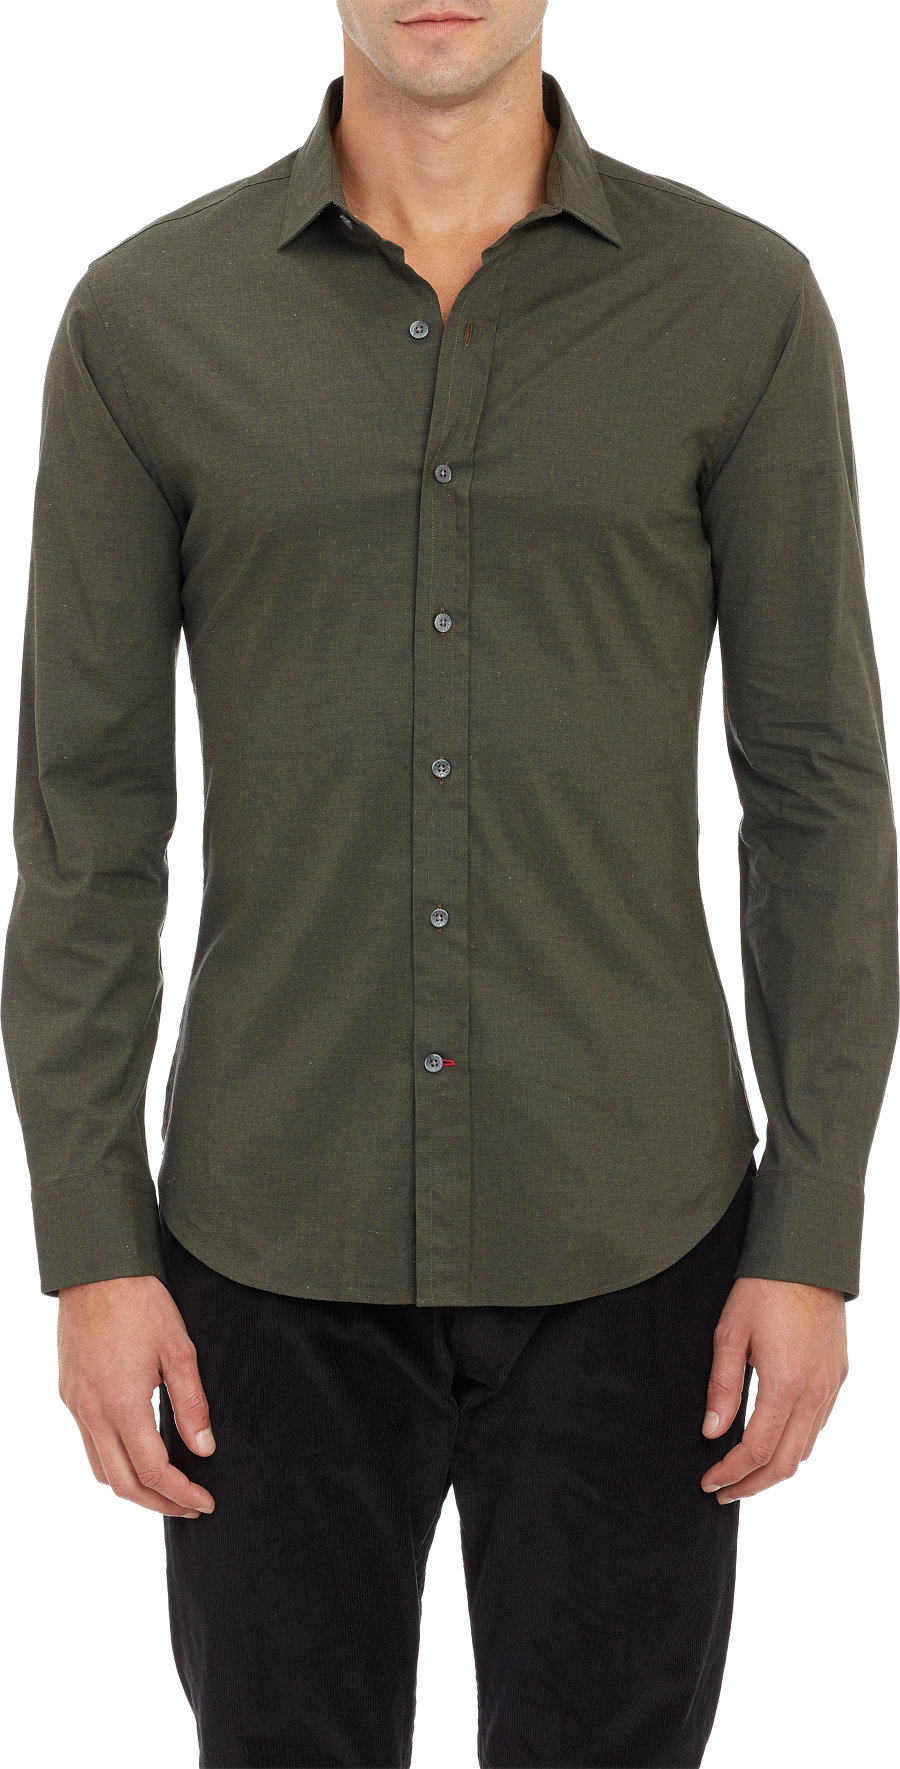 Ralph lauren black label endonend spread collar shirt in for What is a spread collar shirt